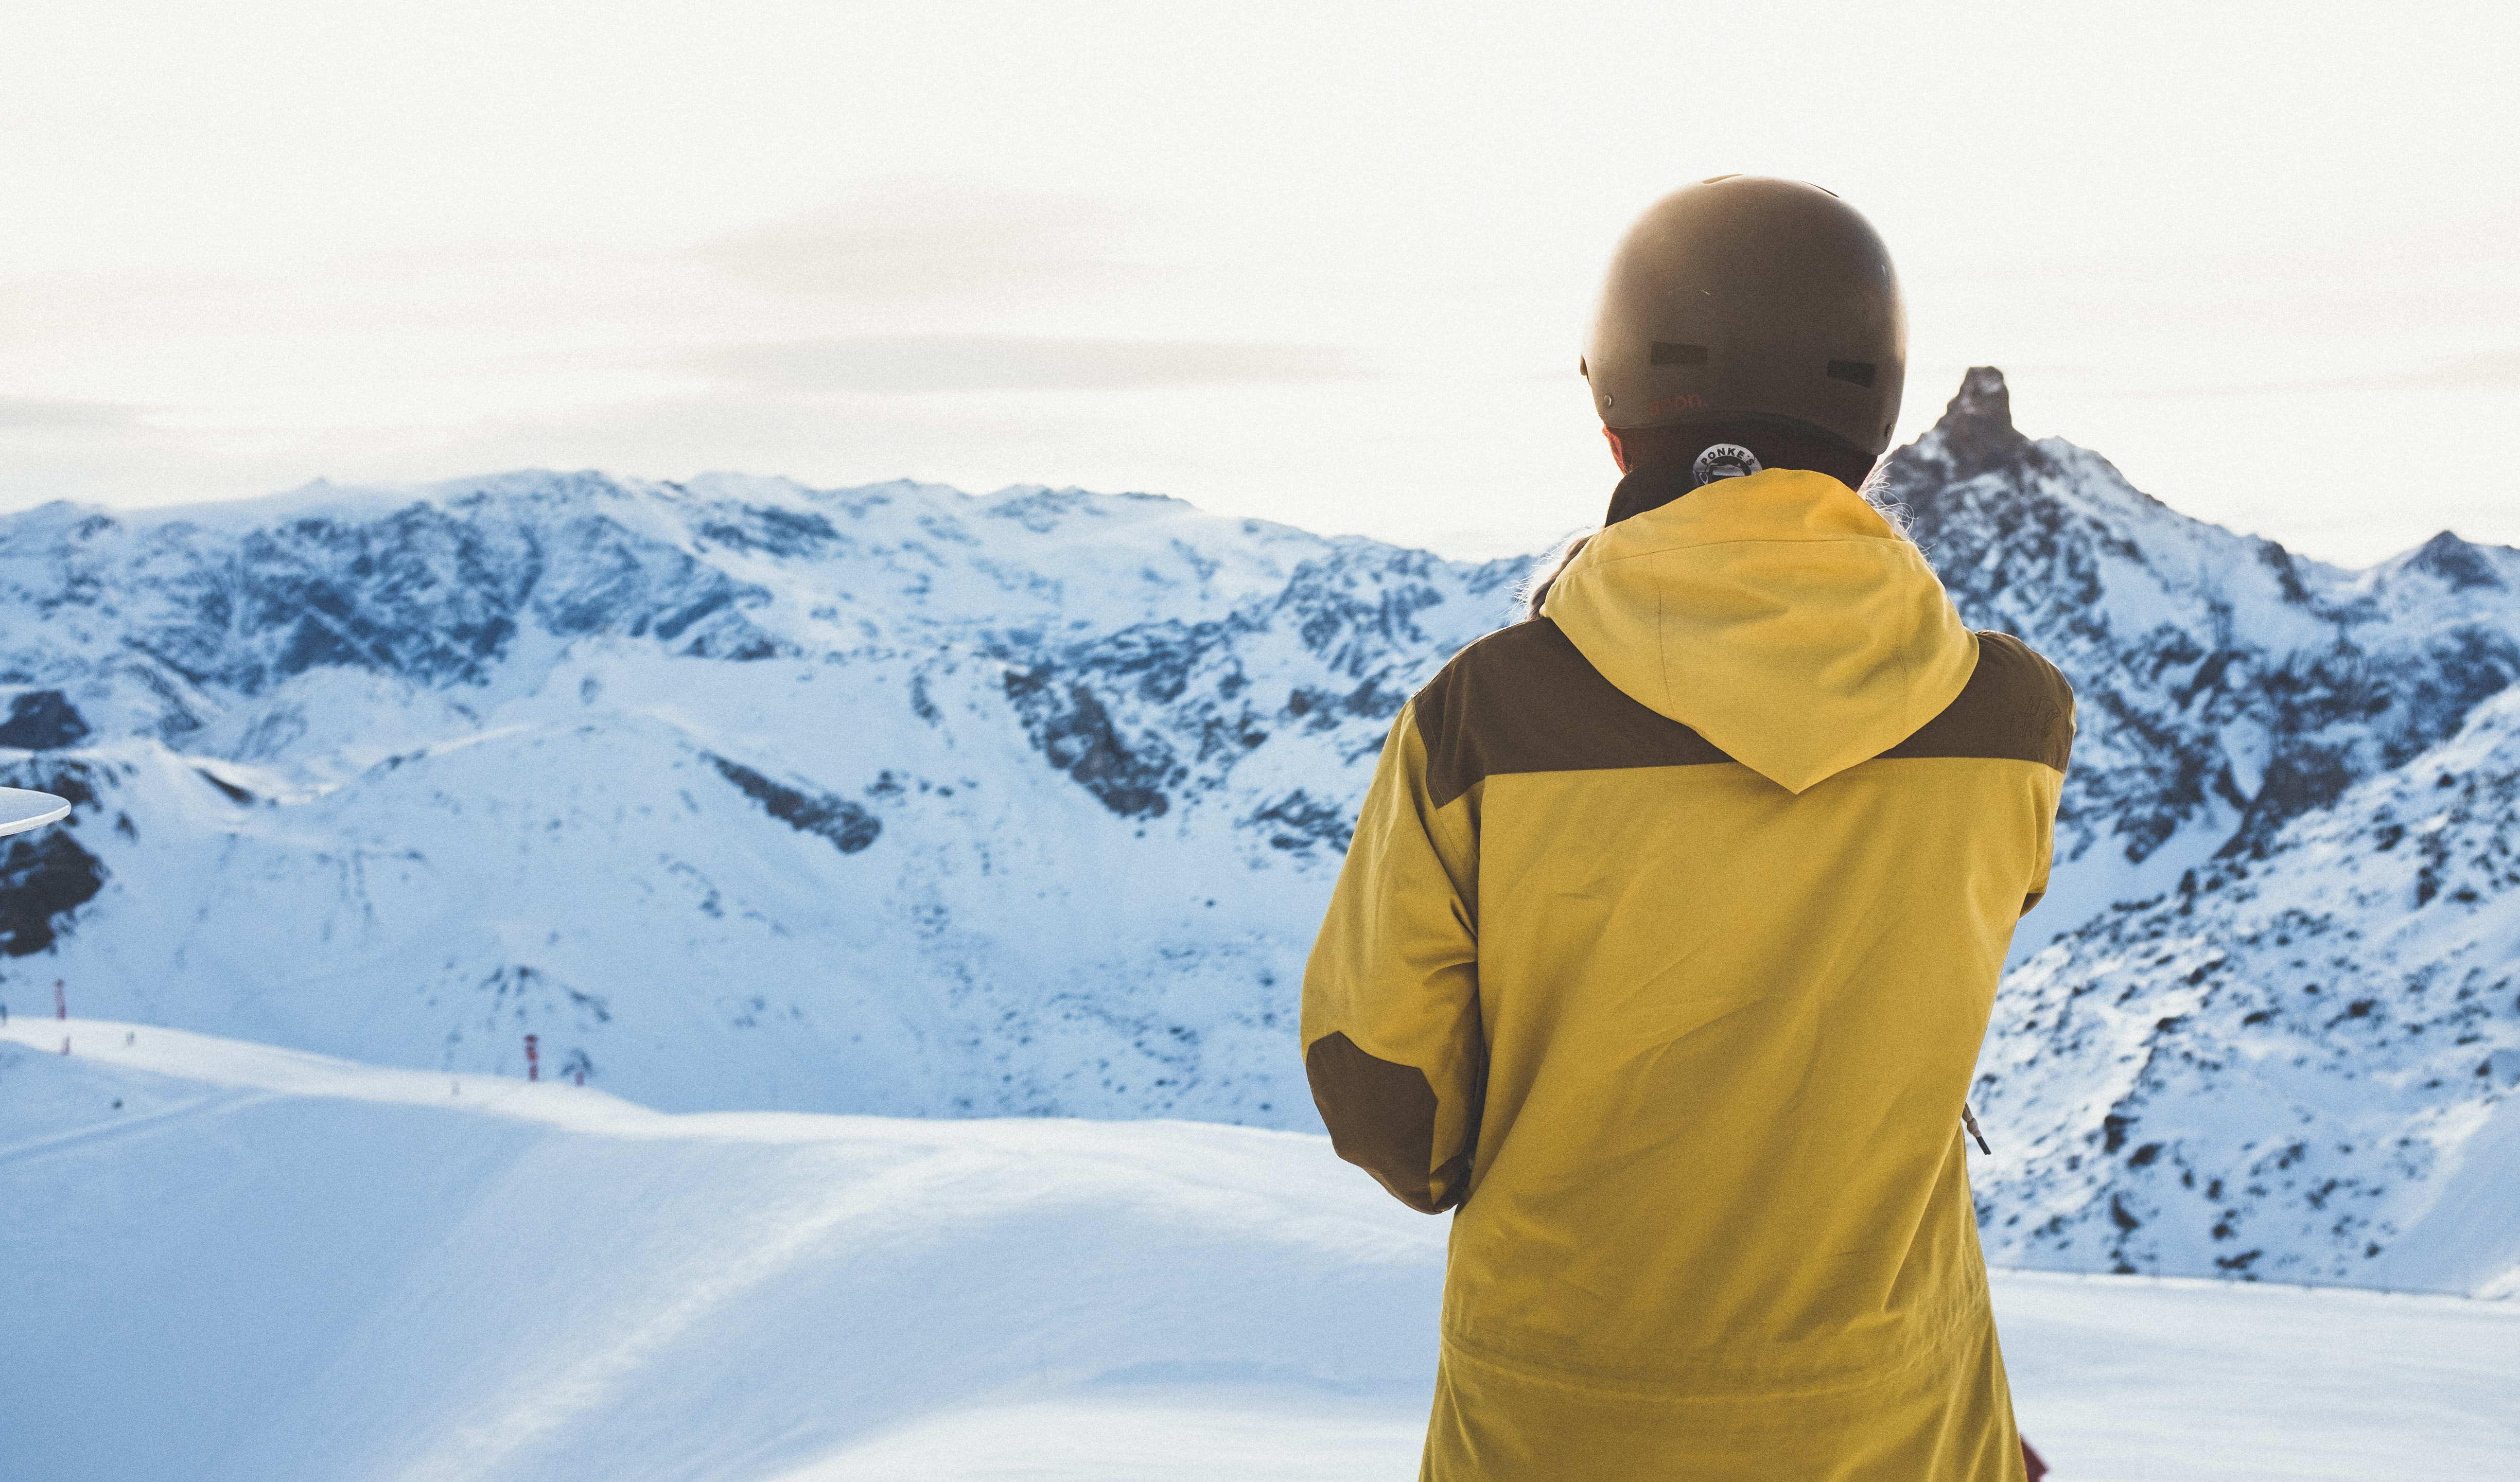 A person in a jacket and helmet looks toward snowy mountains in the distance in Méribel